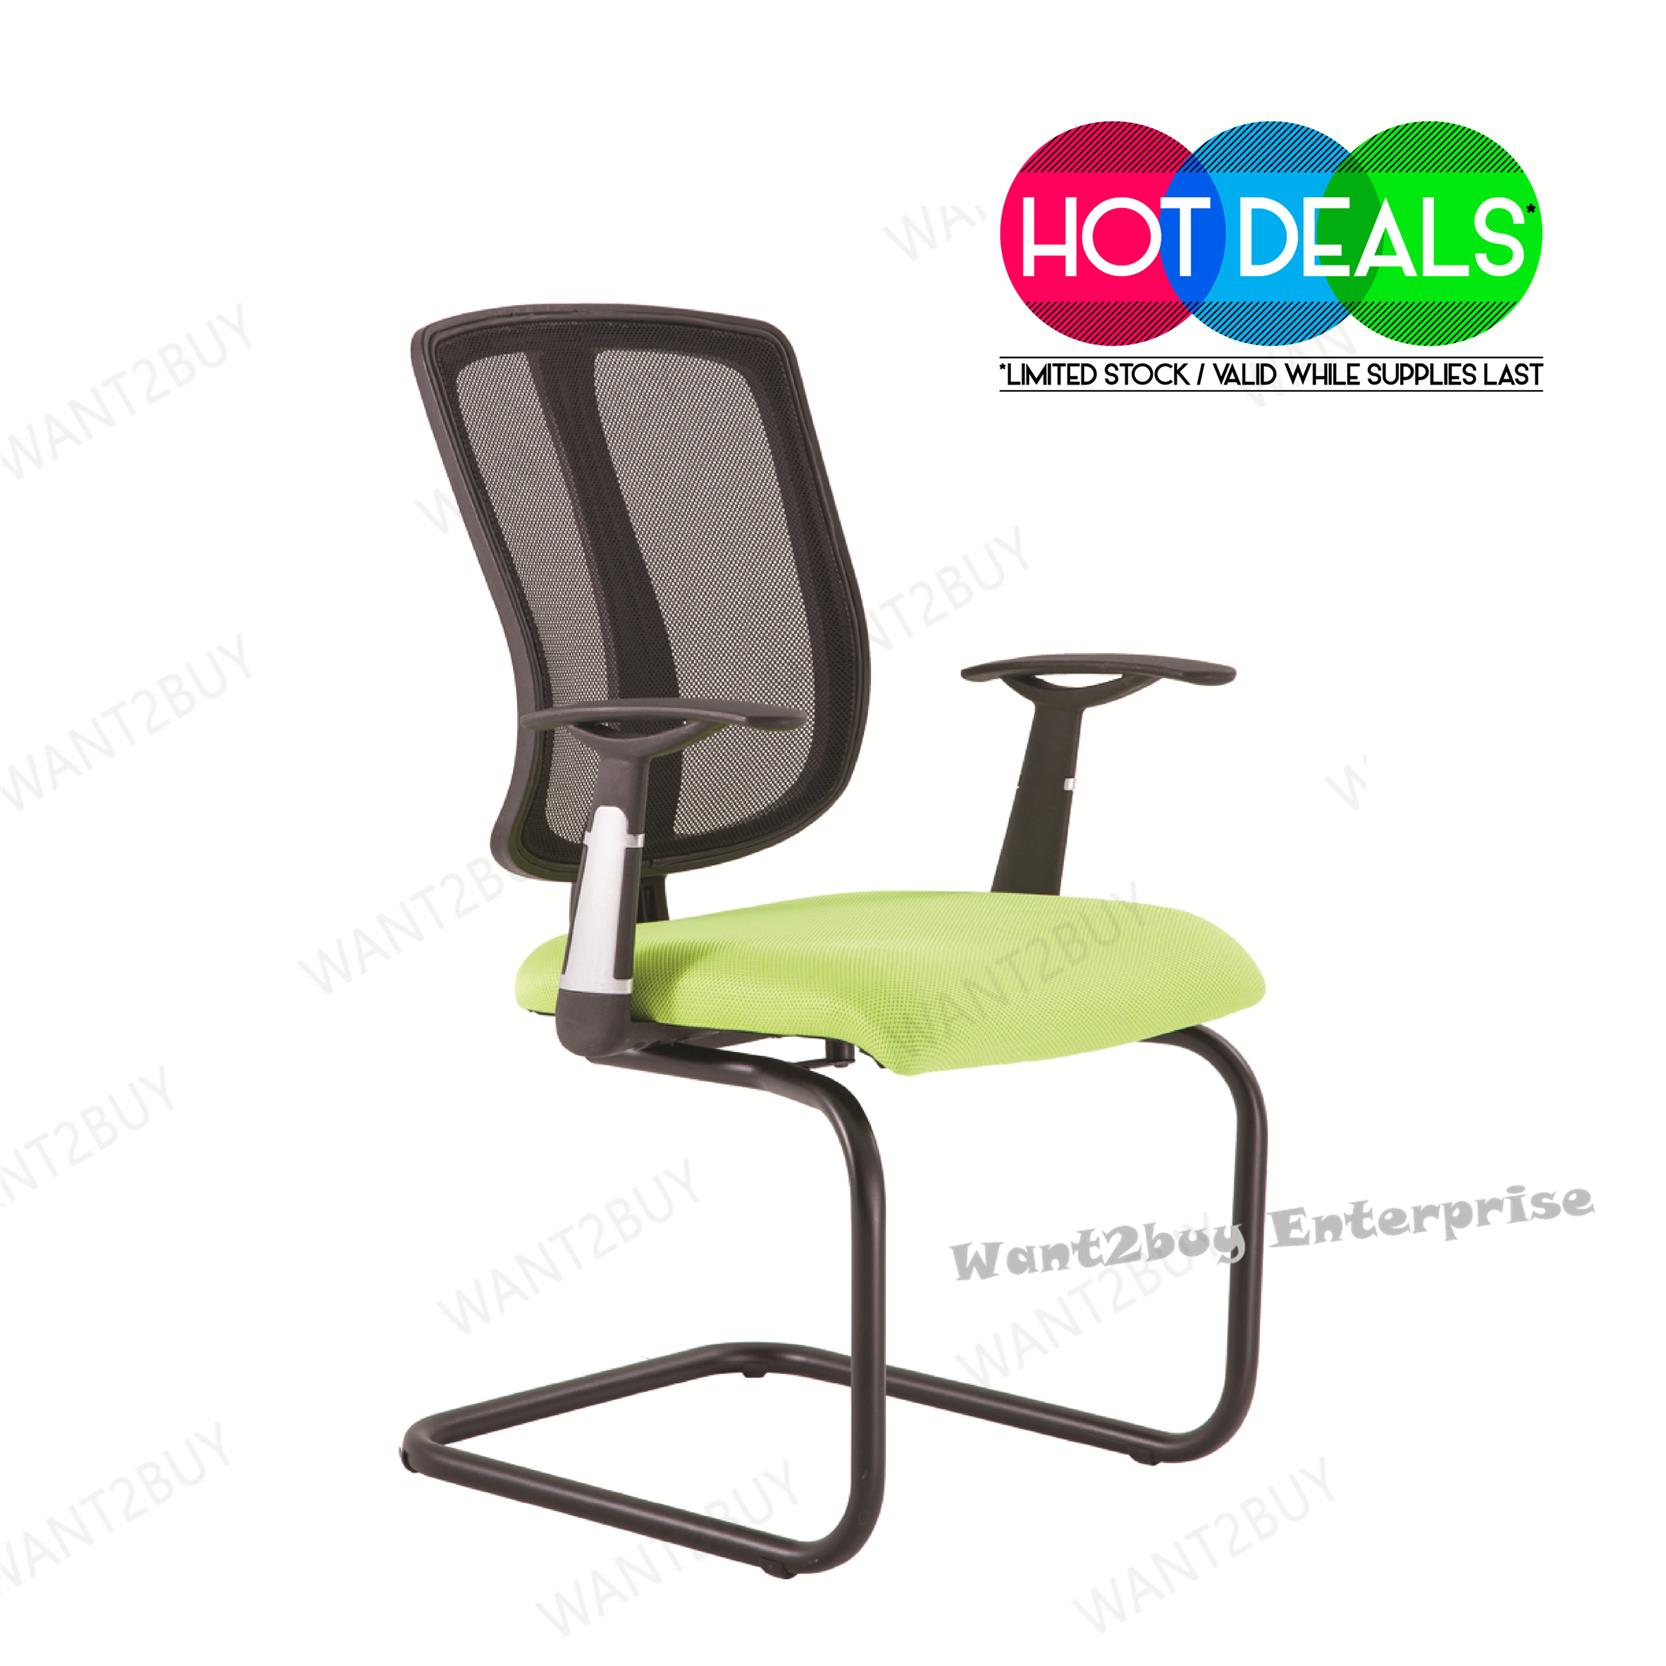 office chair malaysia makeup chairs for professional artists visitor with backrest a end 1 11 2020 15 pm